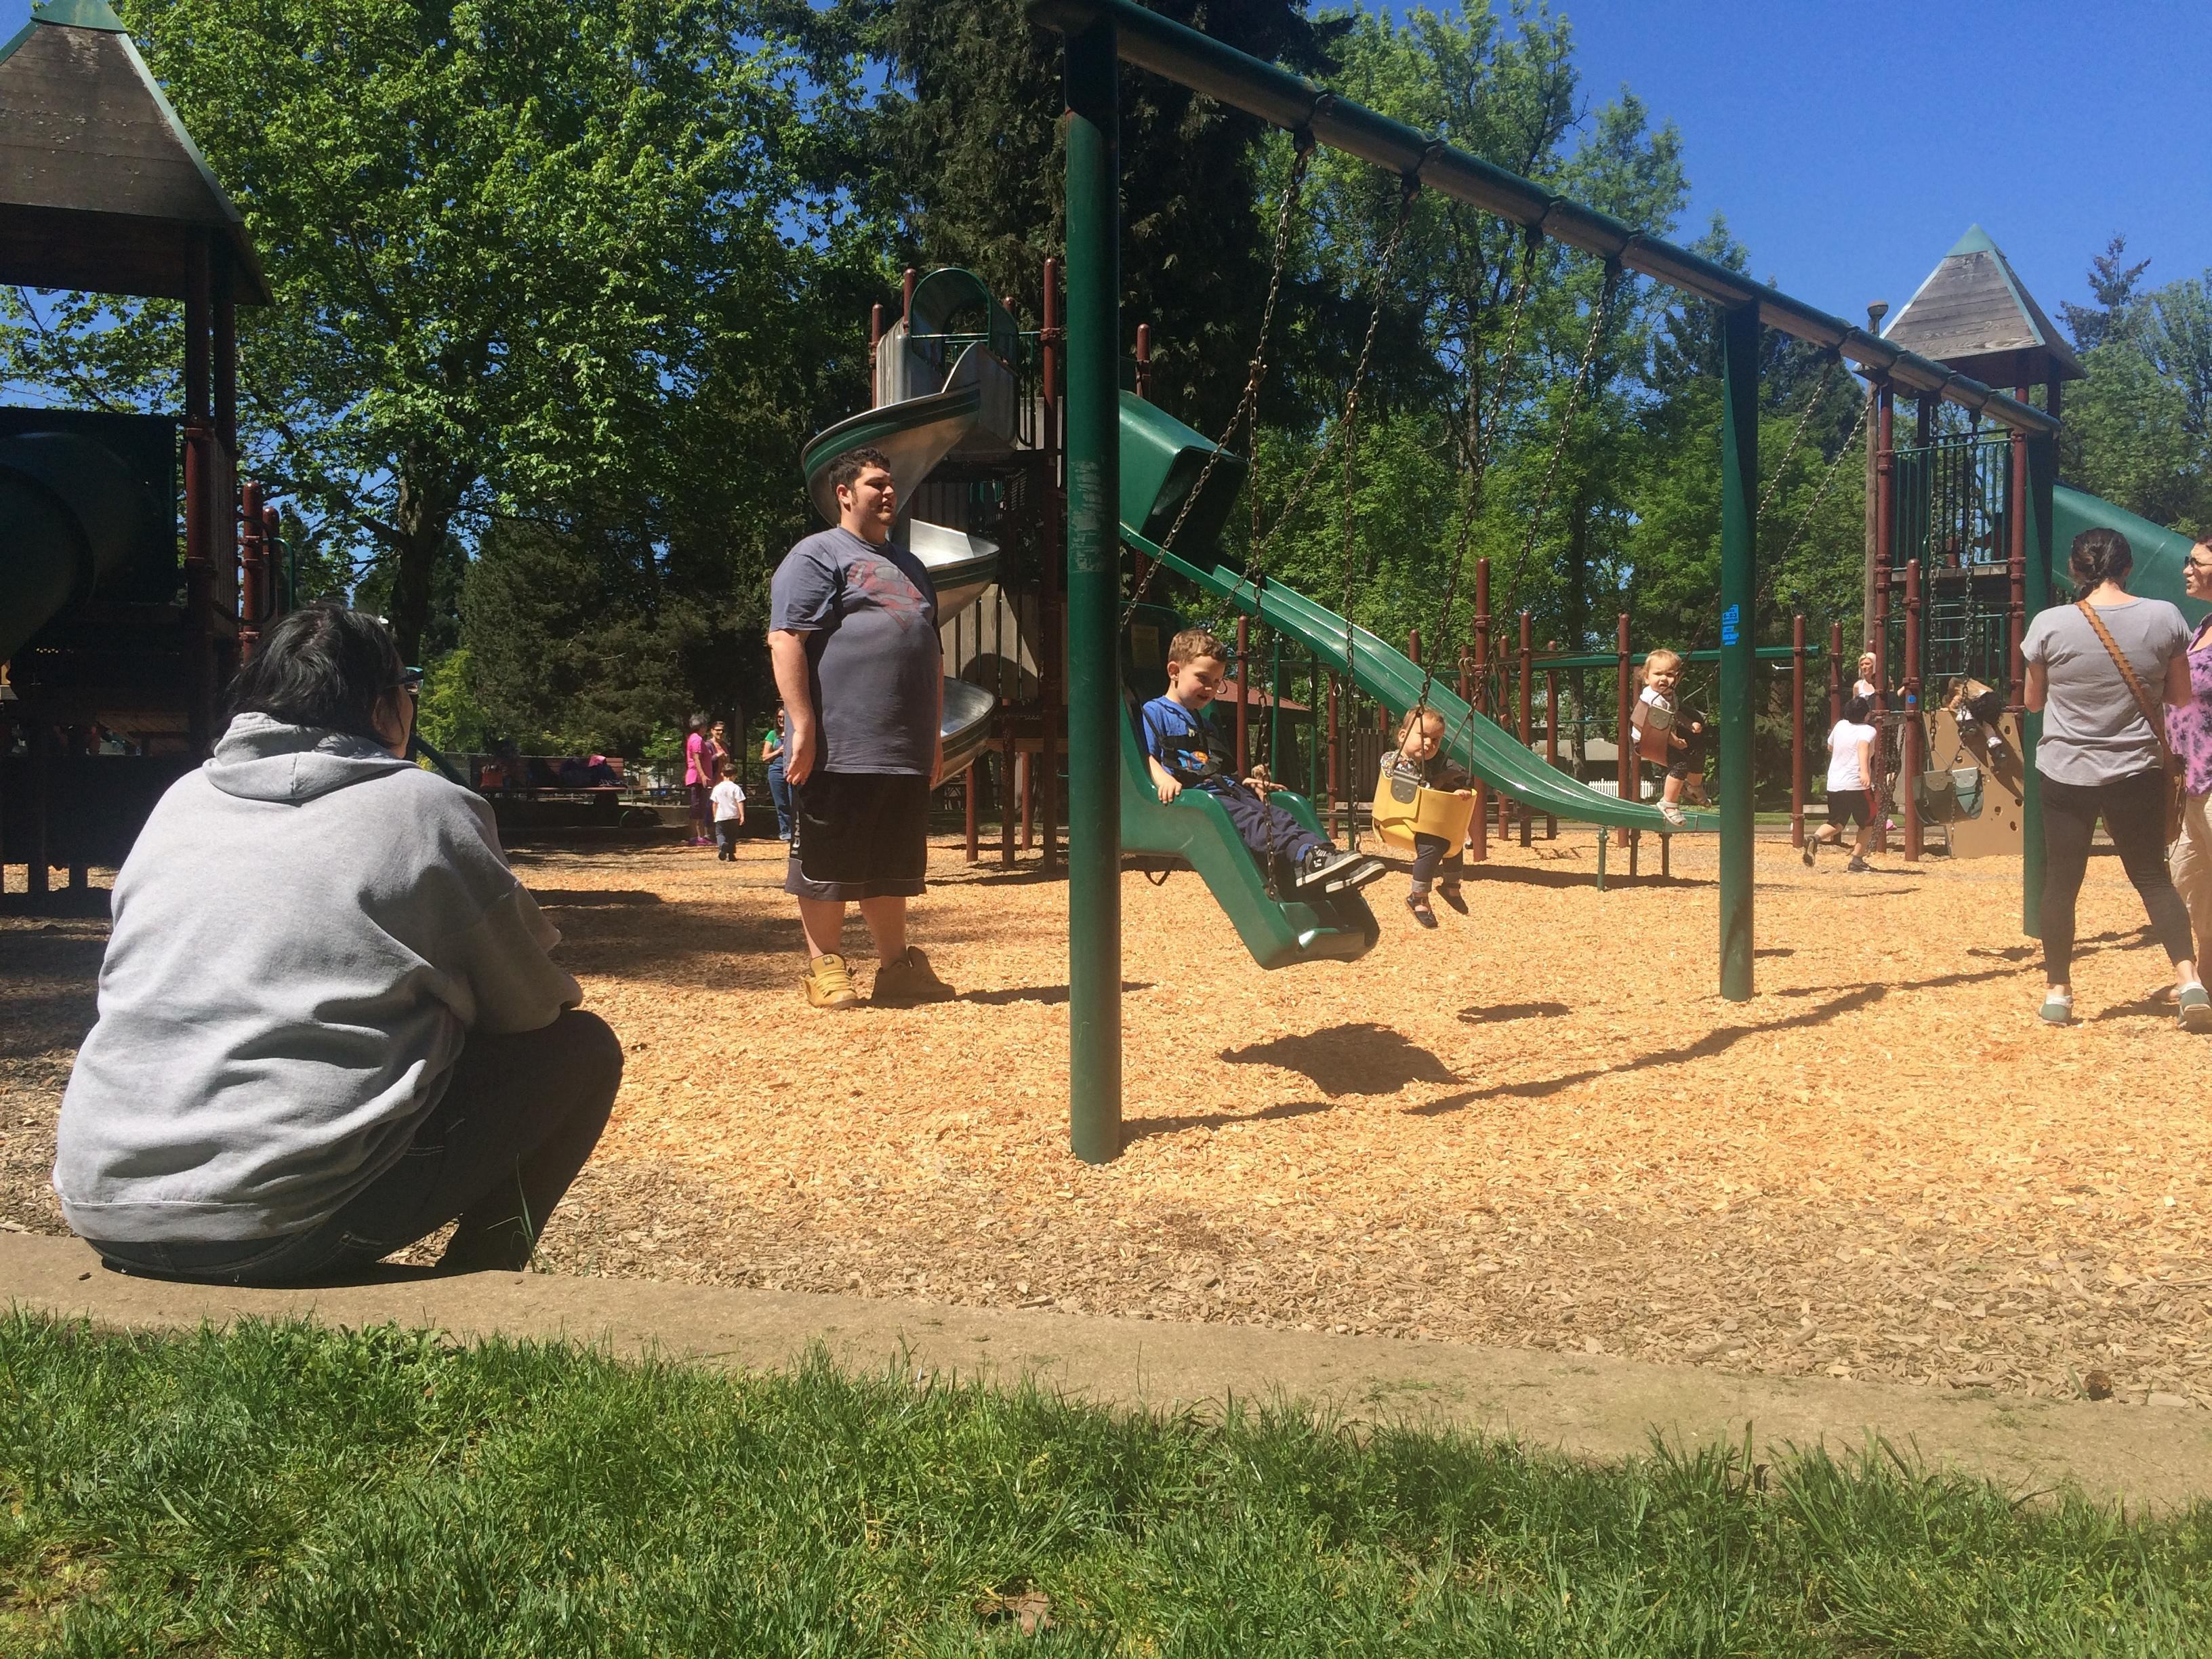 As the weather warms up and kids head to parks and pools, police warn parents to teach their kids ways to stay safe and away from strangers. (SBG photo)